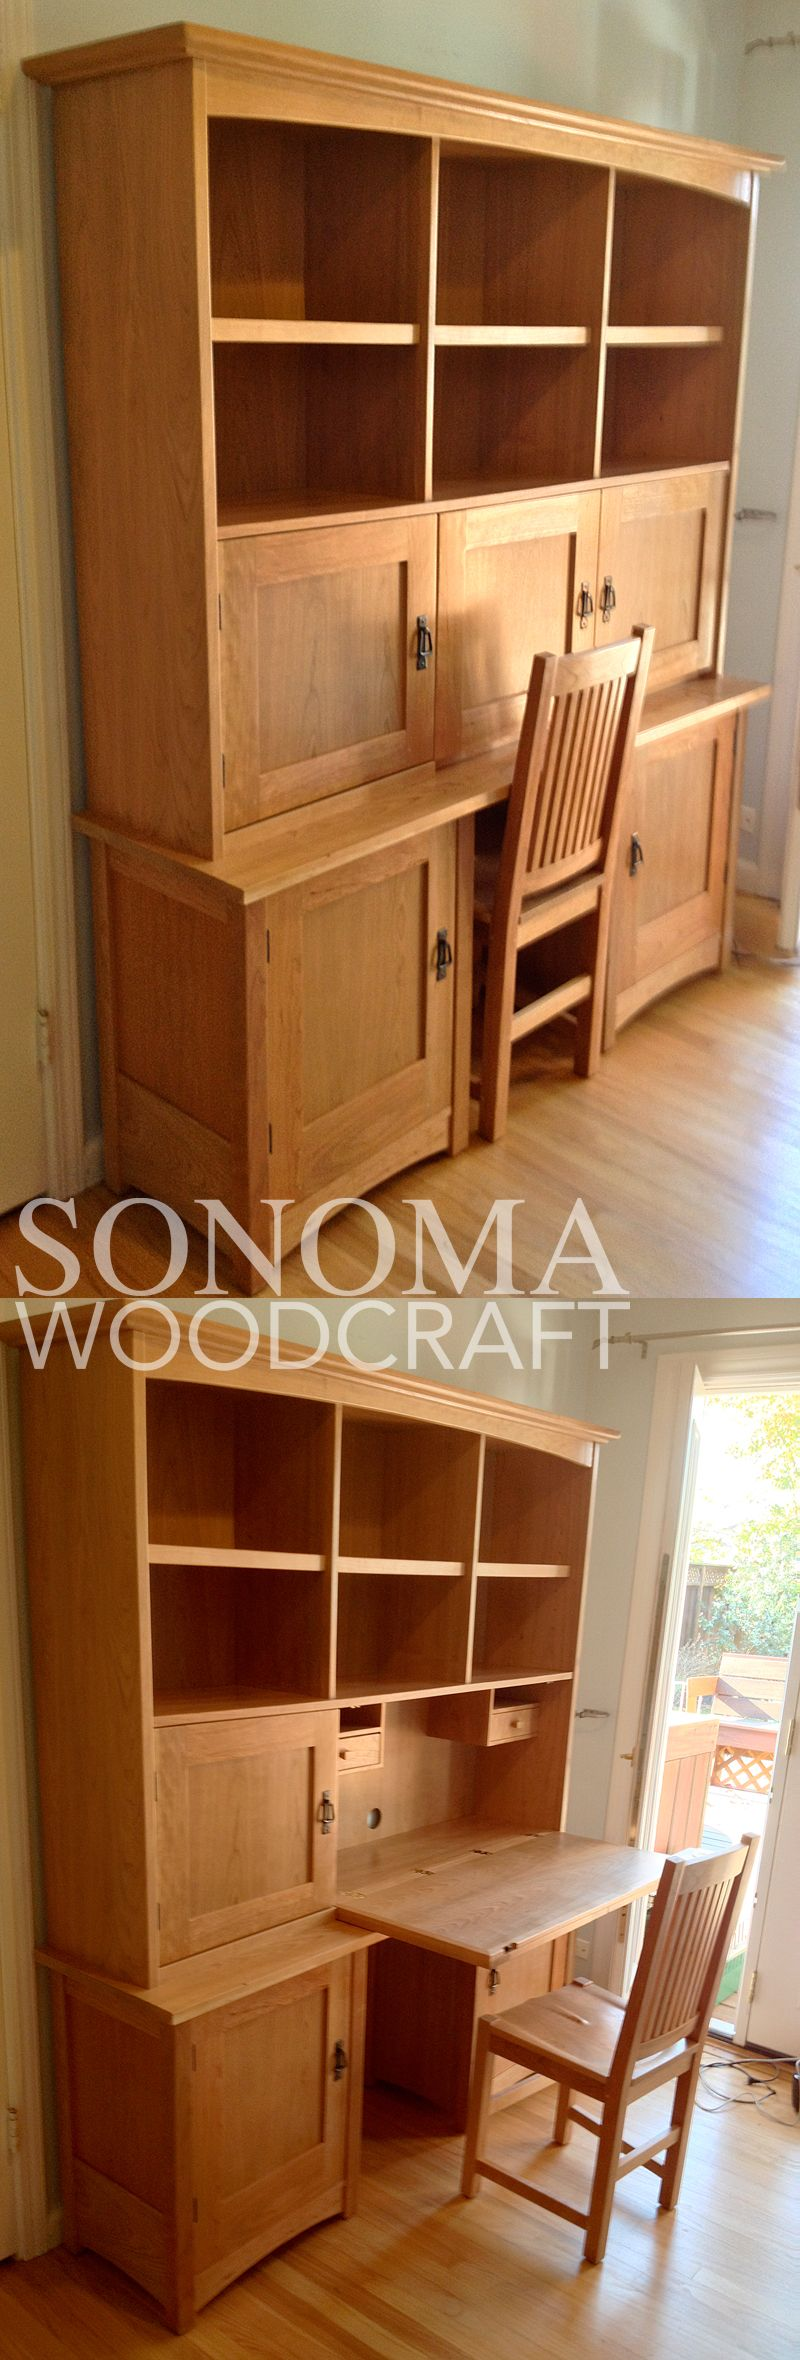 Pin on Smart Furniture by Sonoma Woodcraft